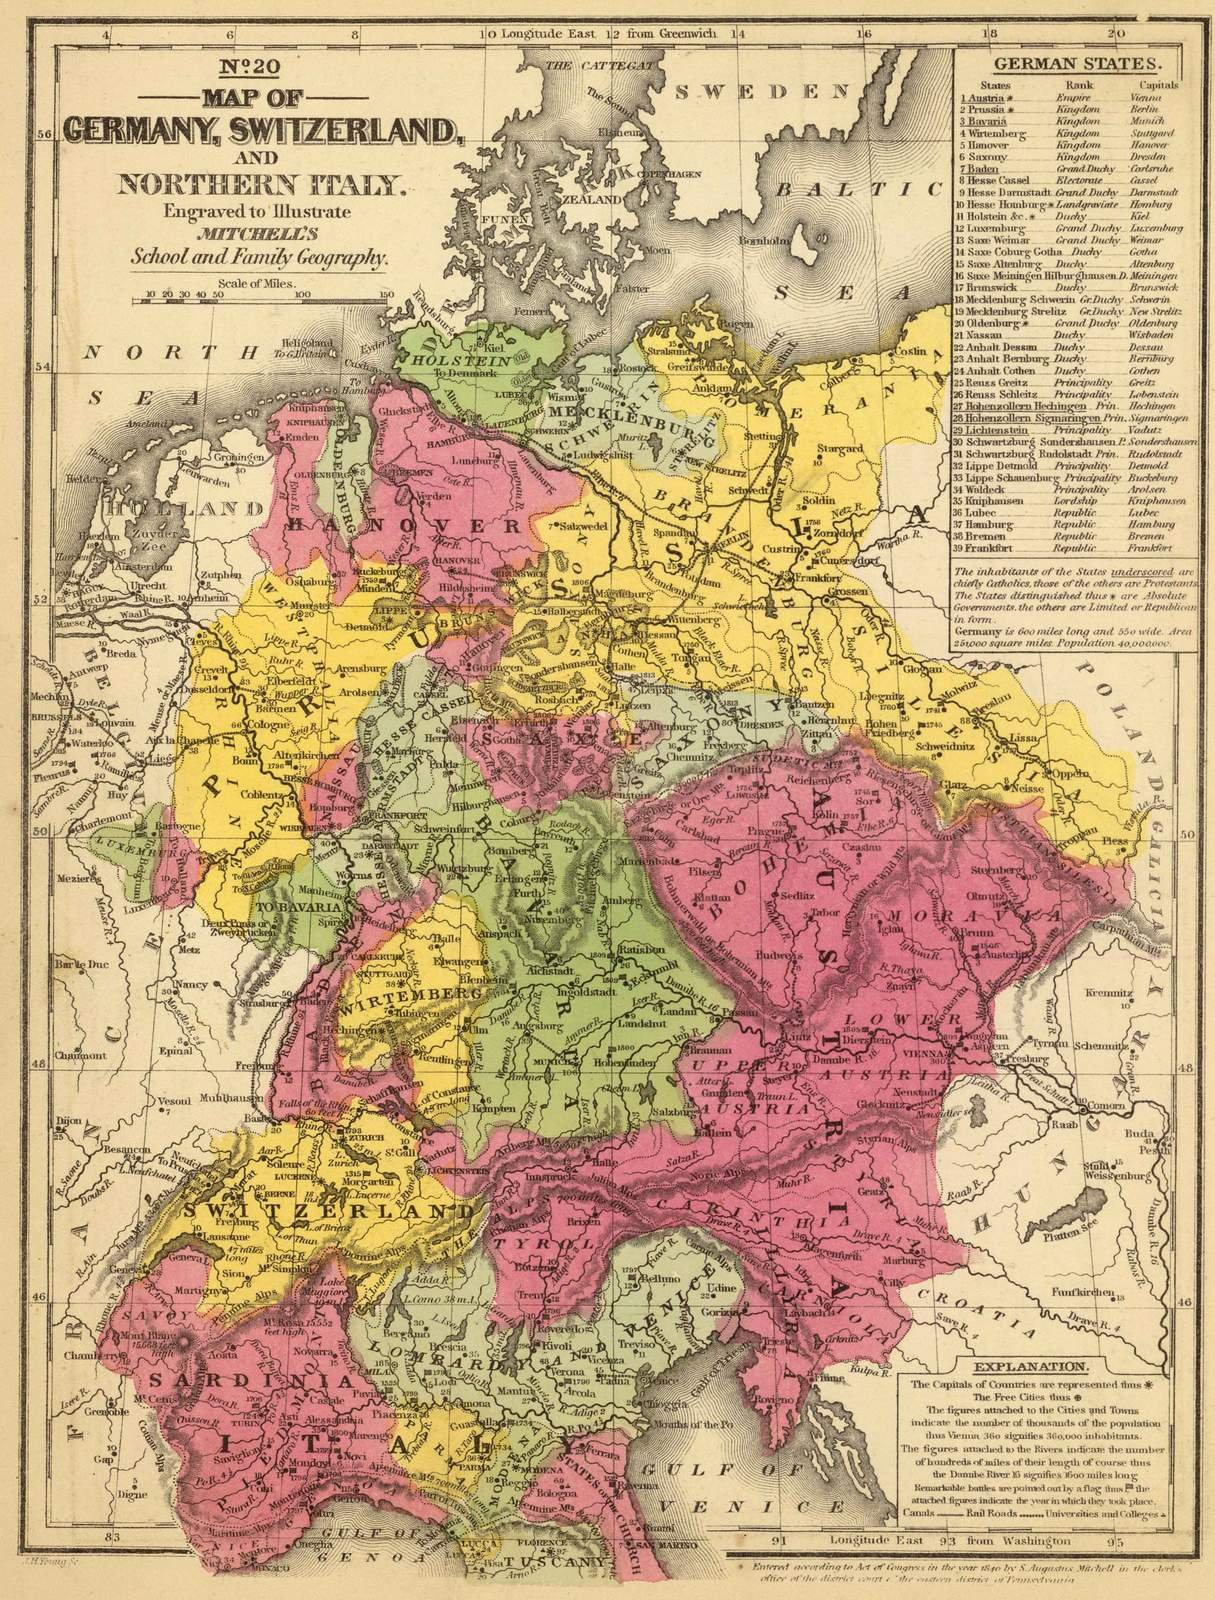 School Atlas | 1847 Germany, Switzerland, N. Italy. | Historic Antique Vintage Map Reprint